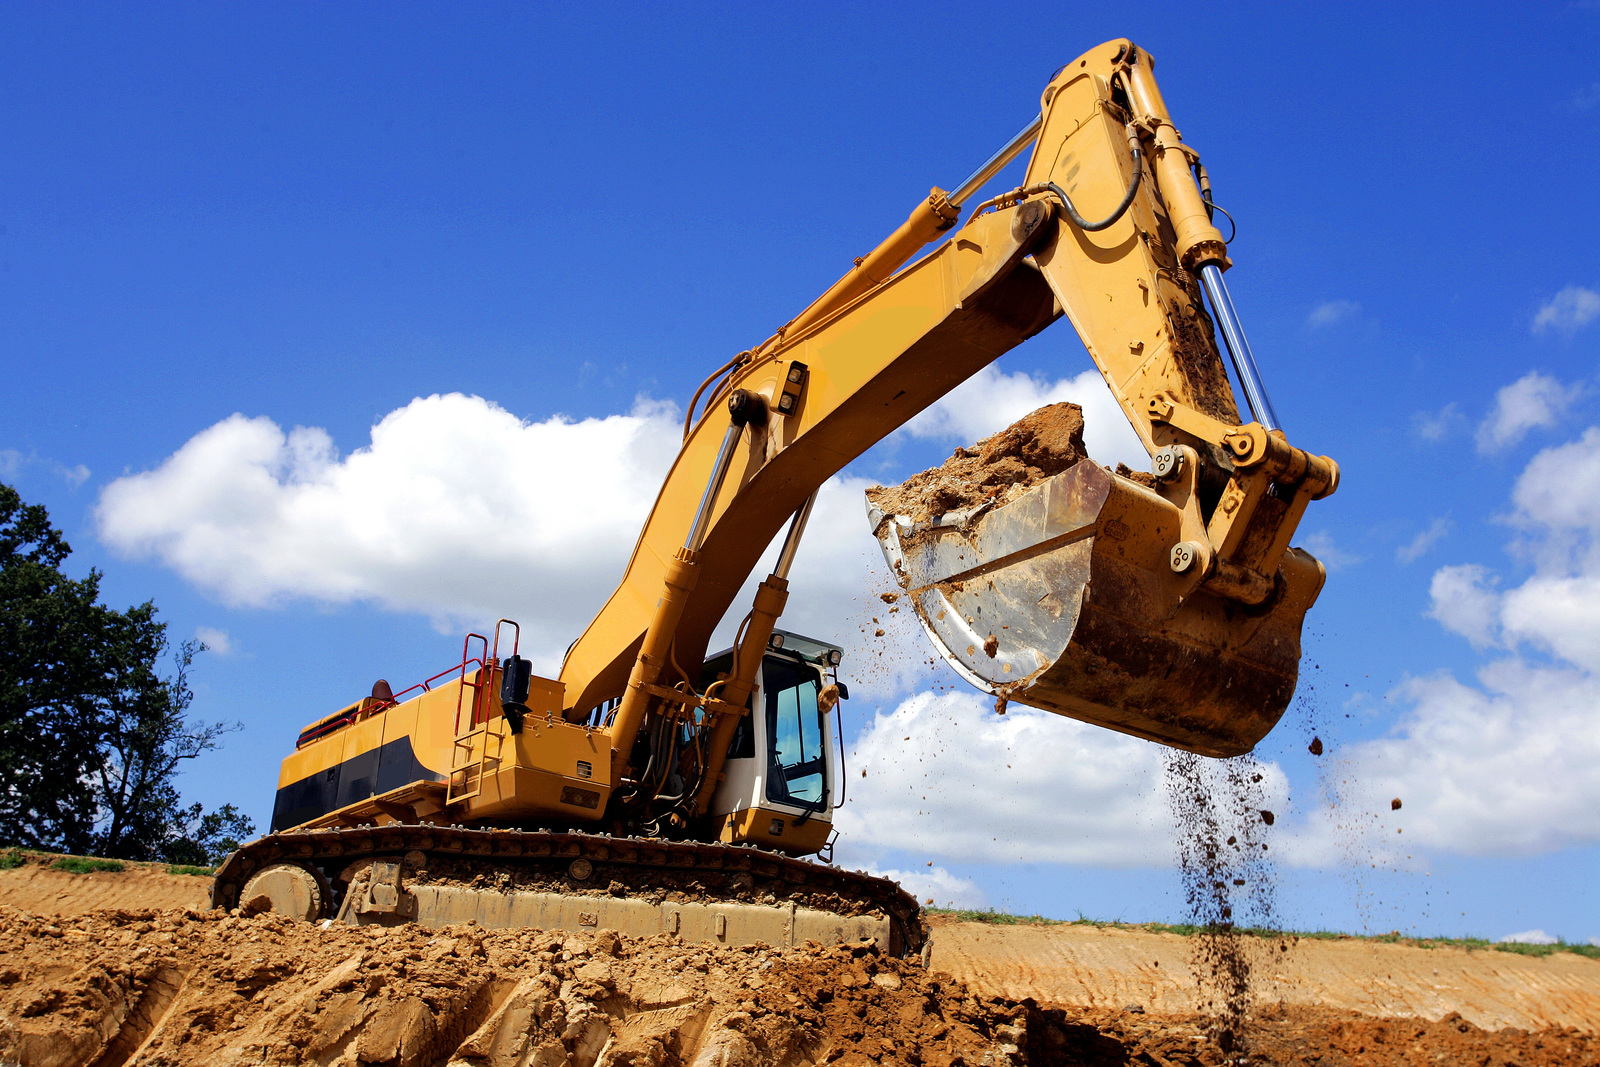 Diggers for Contruction